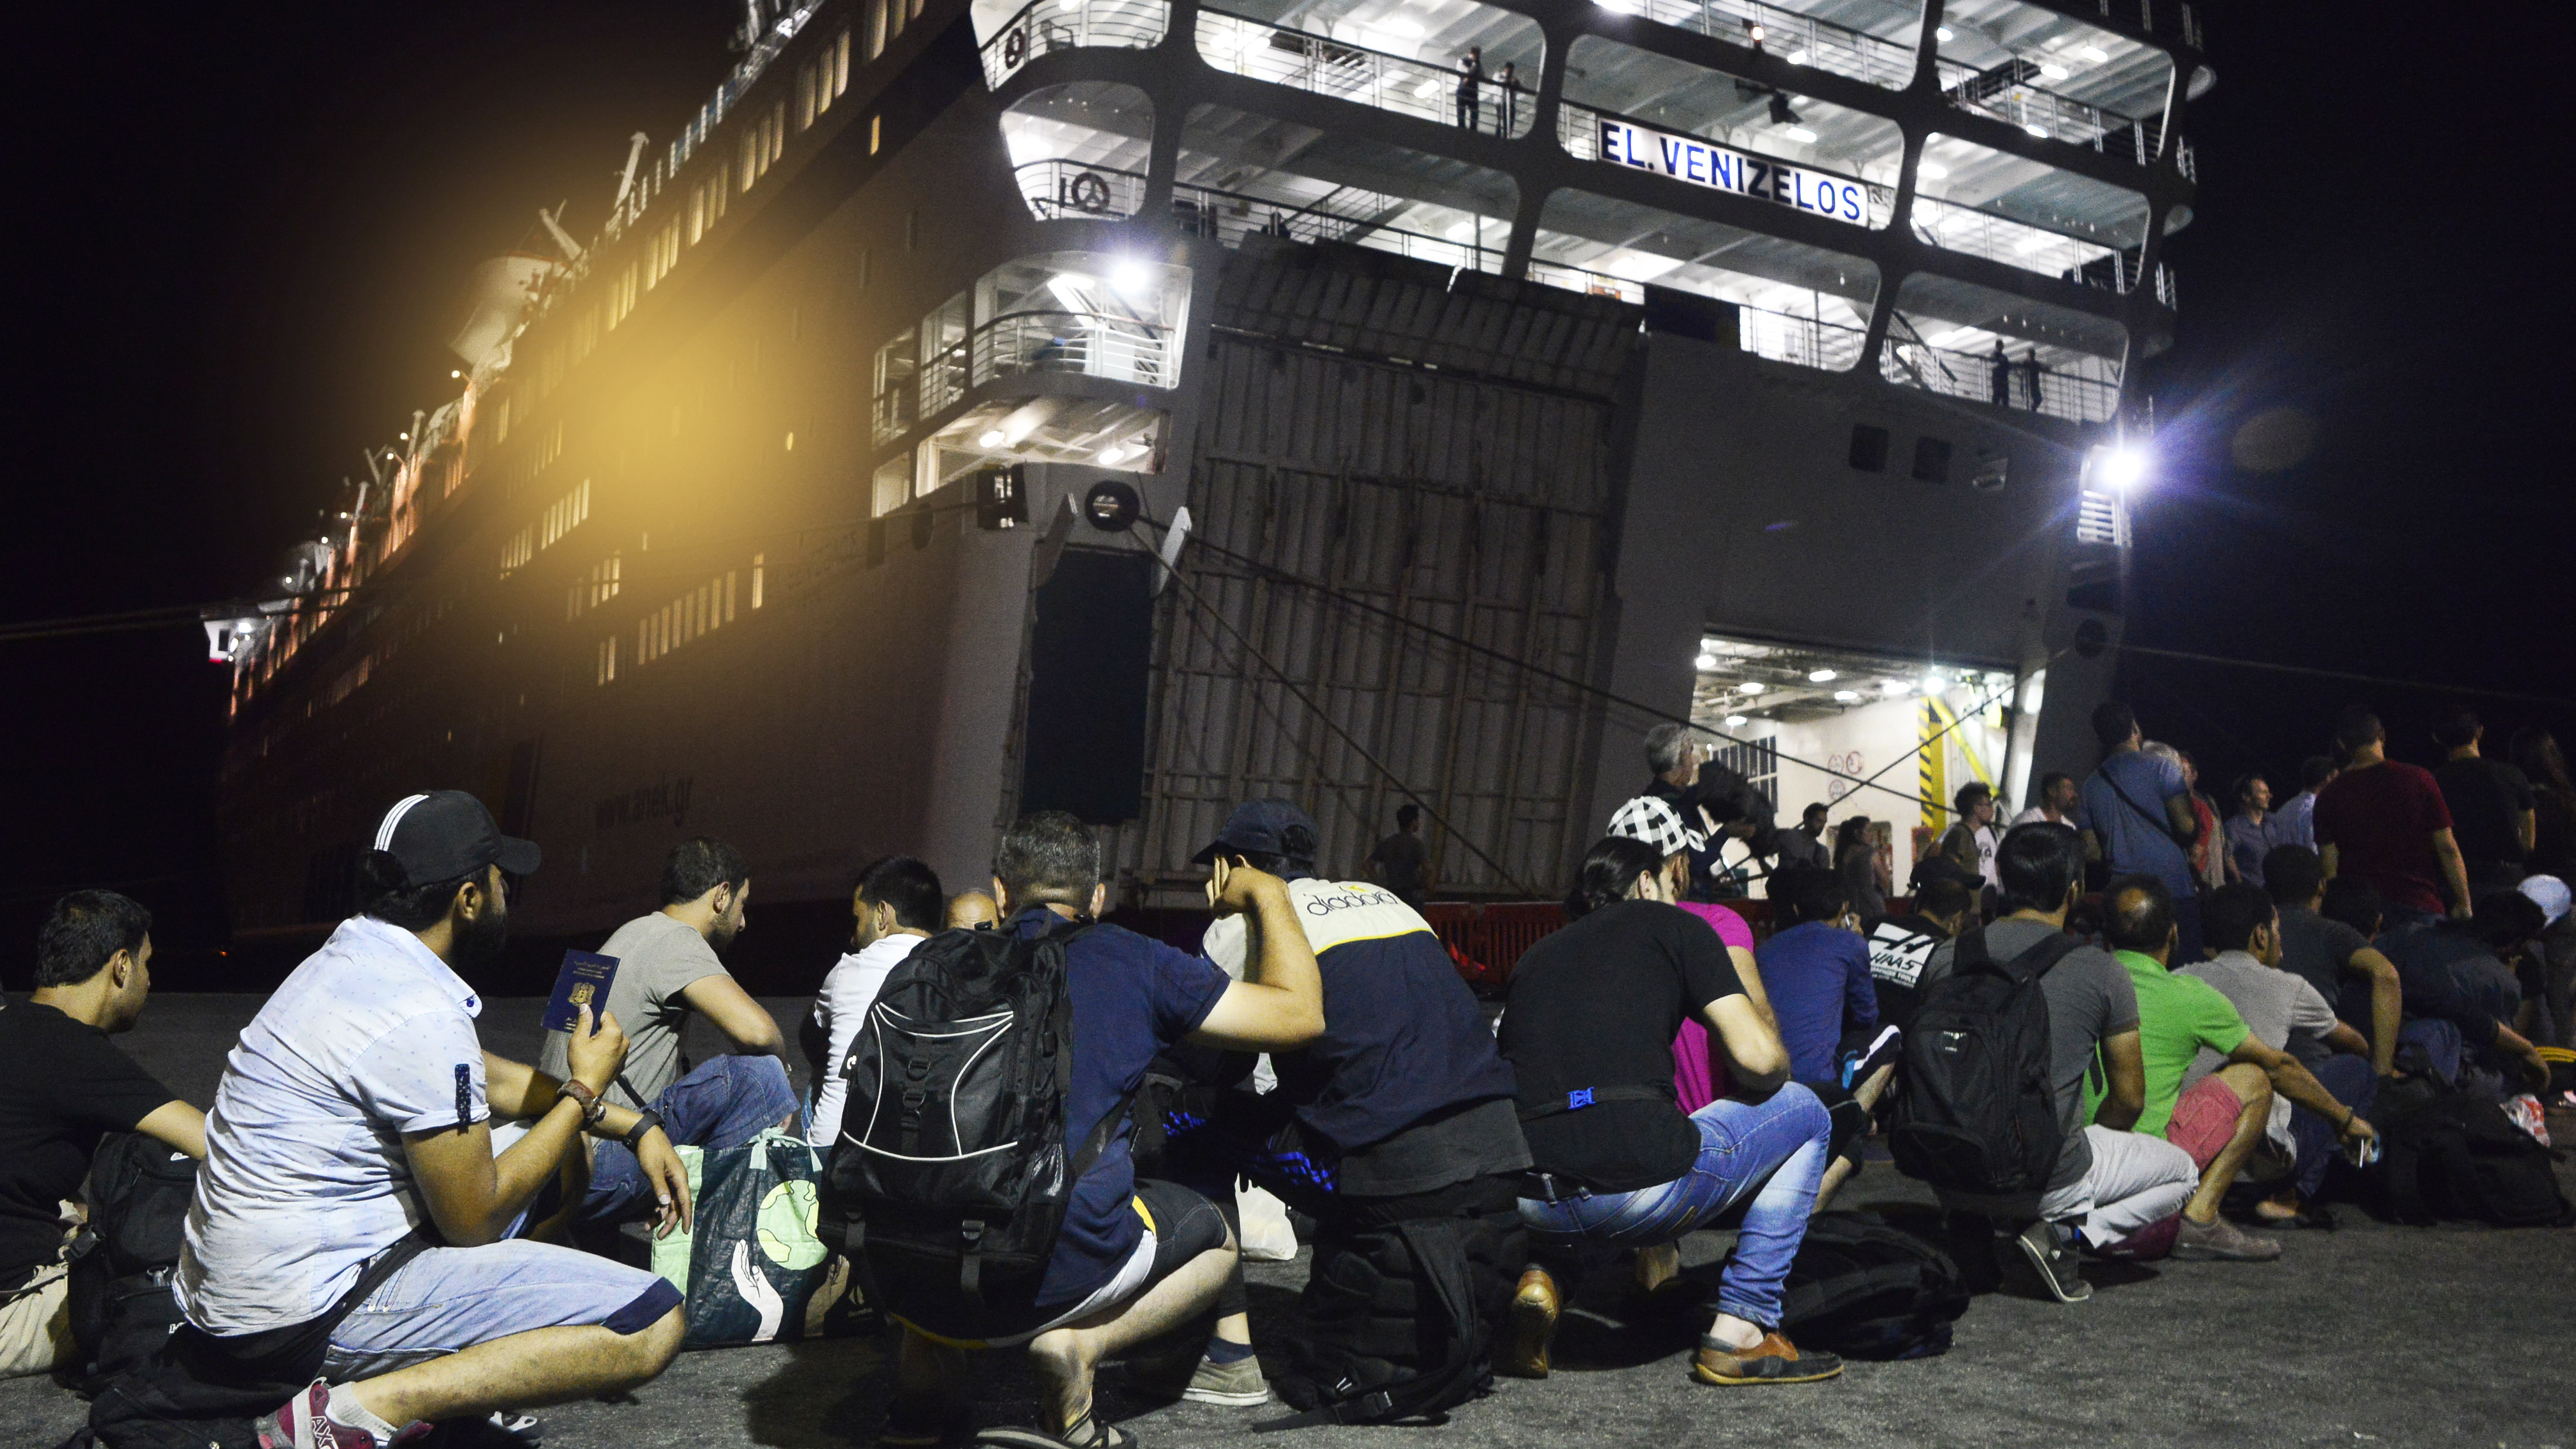 Syrian refugees prepare to board the passenger ship Eleftherios Venizelos at Kos's main port on Sunday in Kos, Greece. The vessel will house more than 2,500 refugees and migrants who entered the country from the Turkish coast. Milos Bicanski/Getty Images